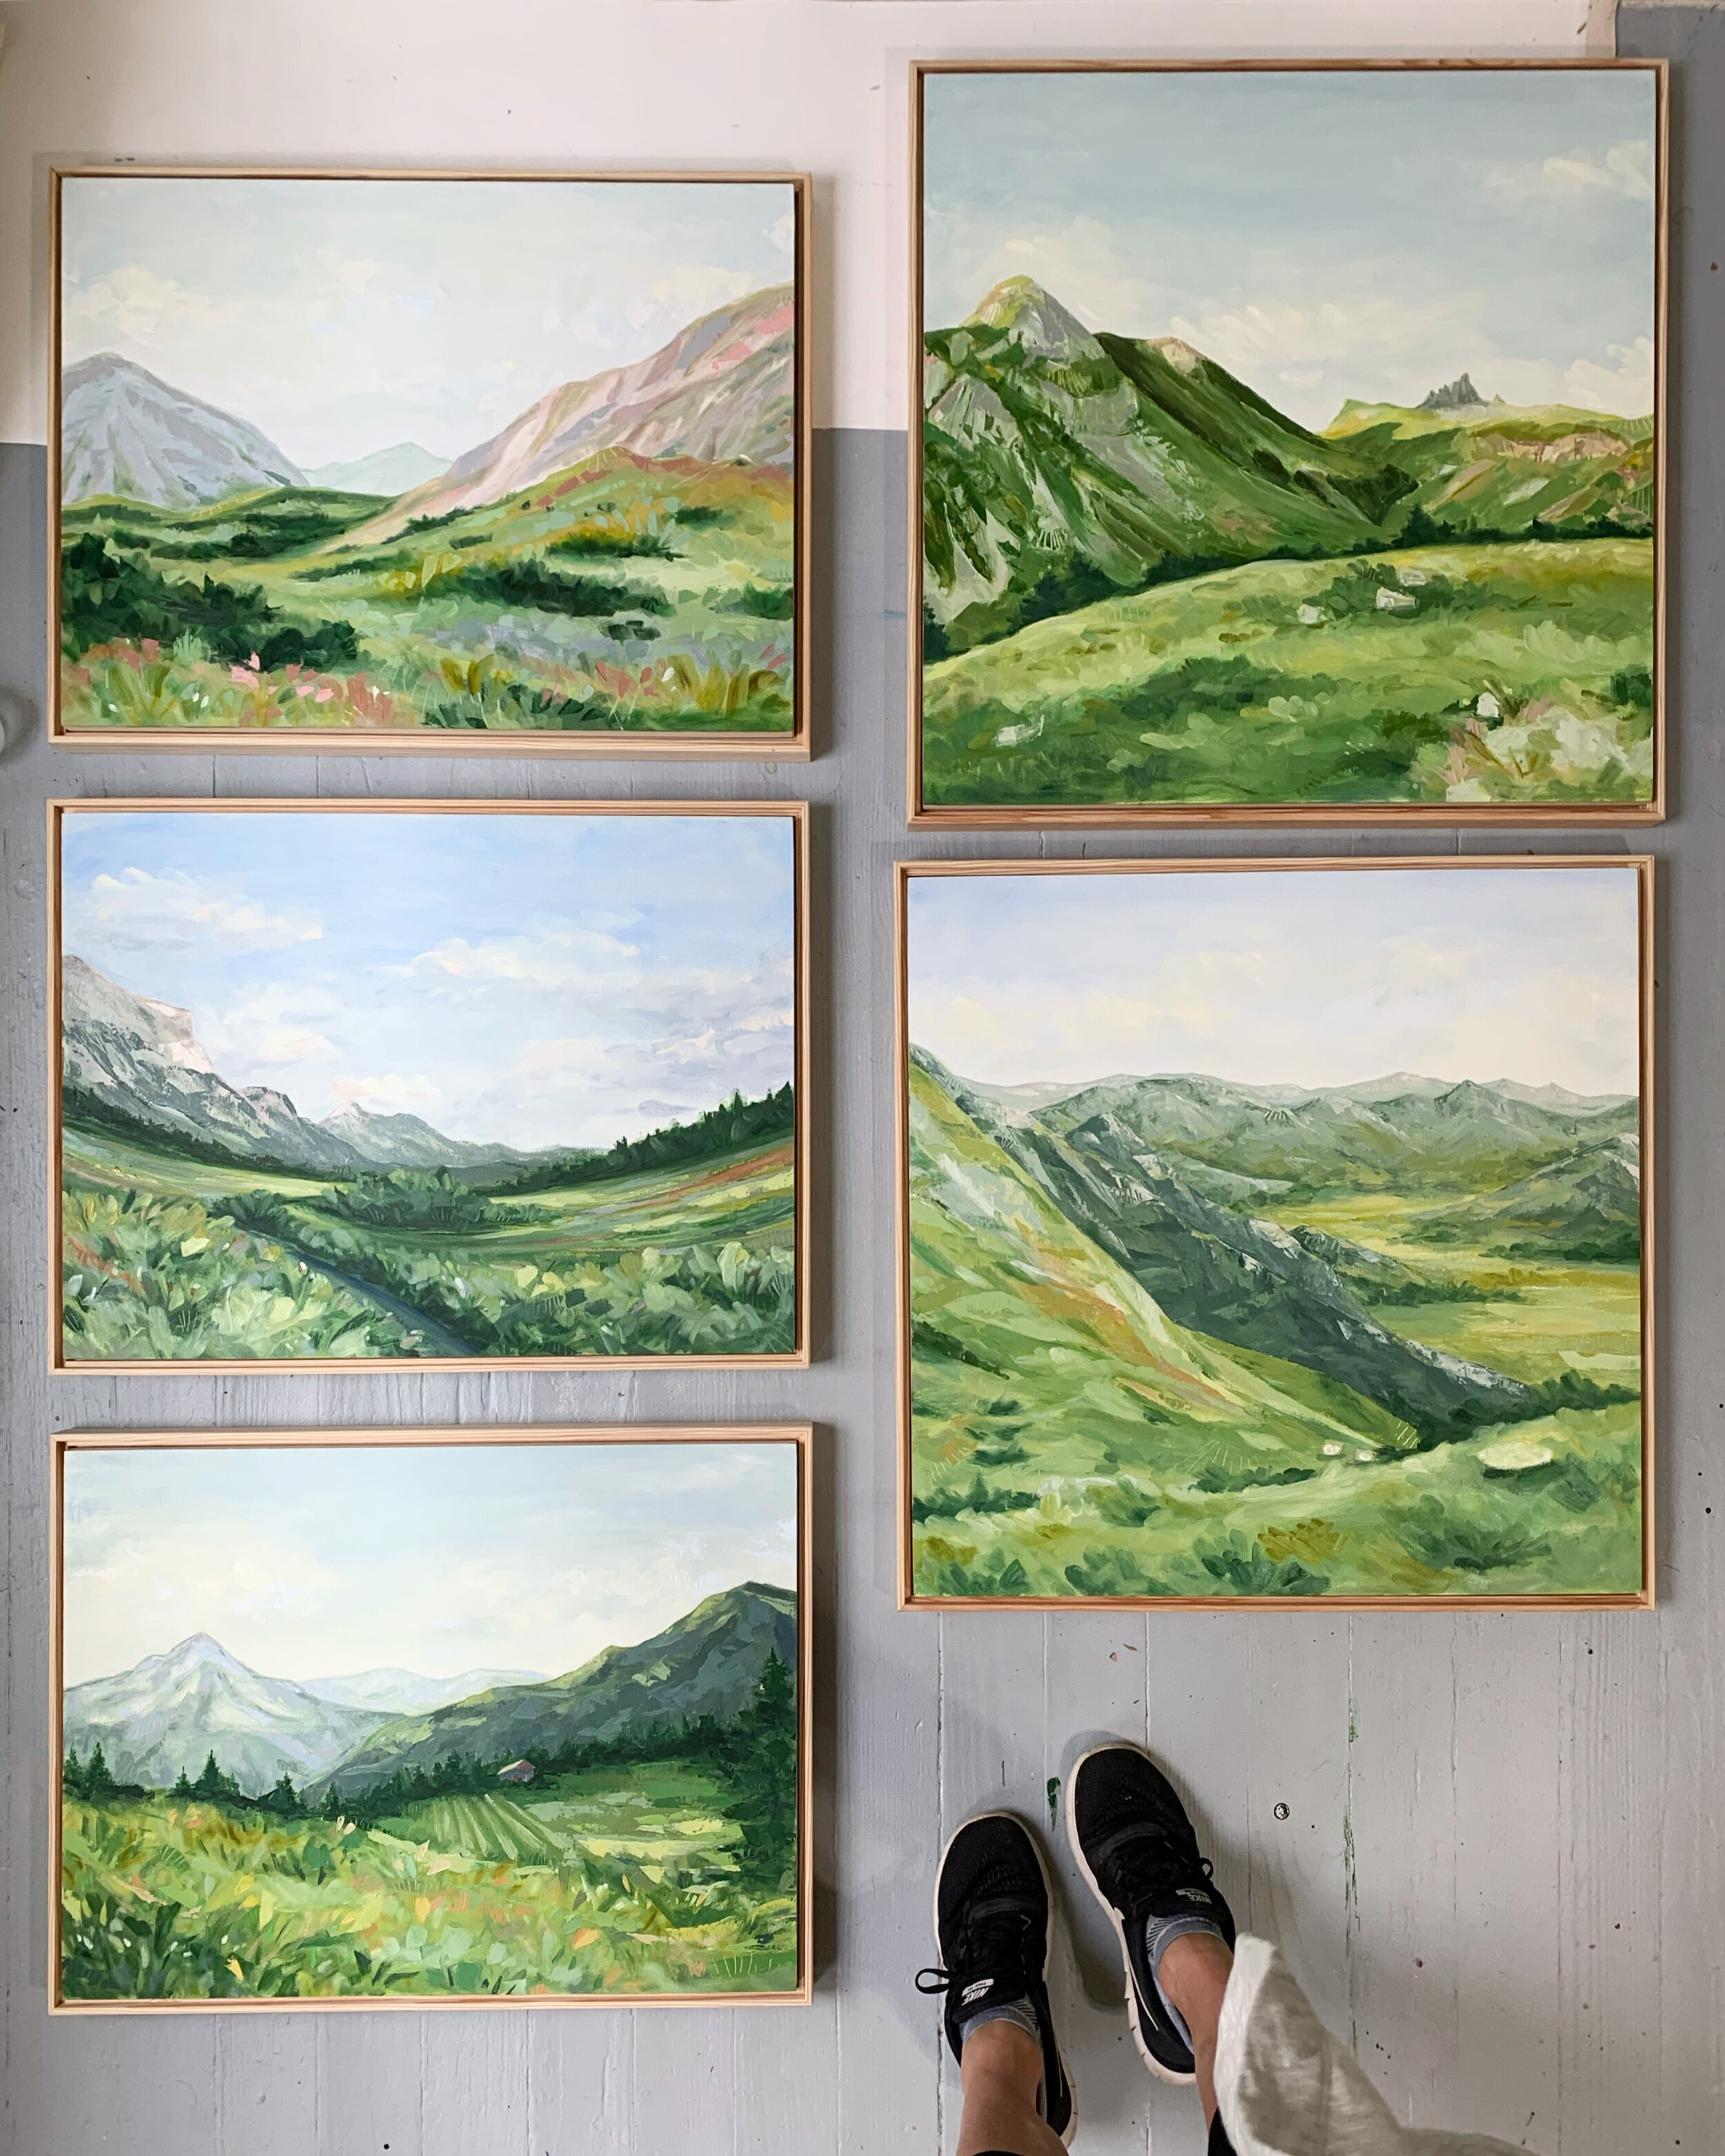 The Alps Series is underway! Each of these oil paintings will be framed and available November 14.